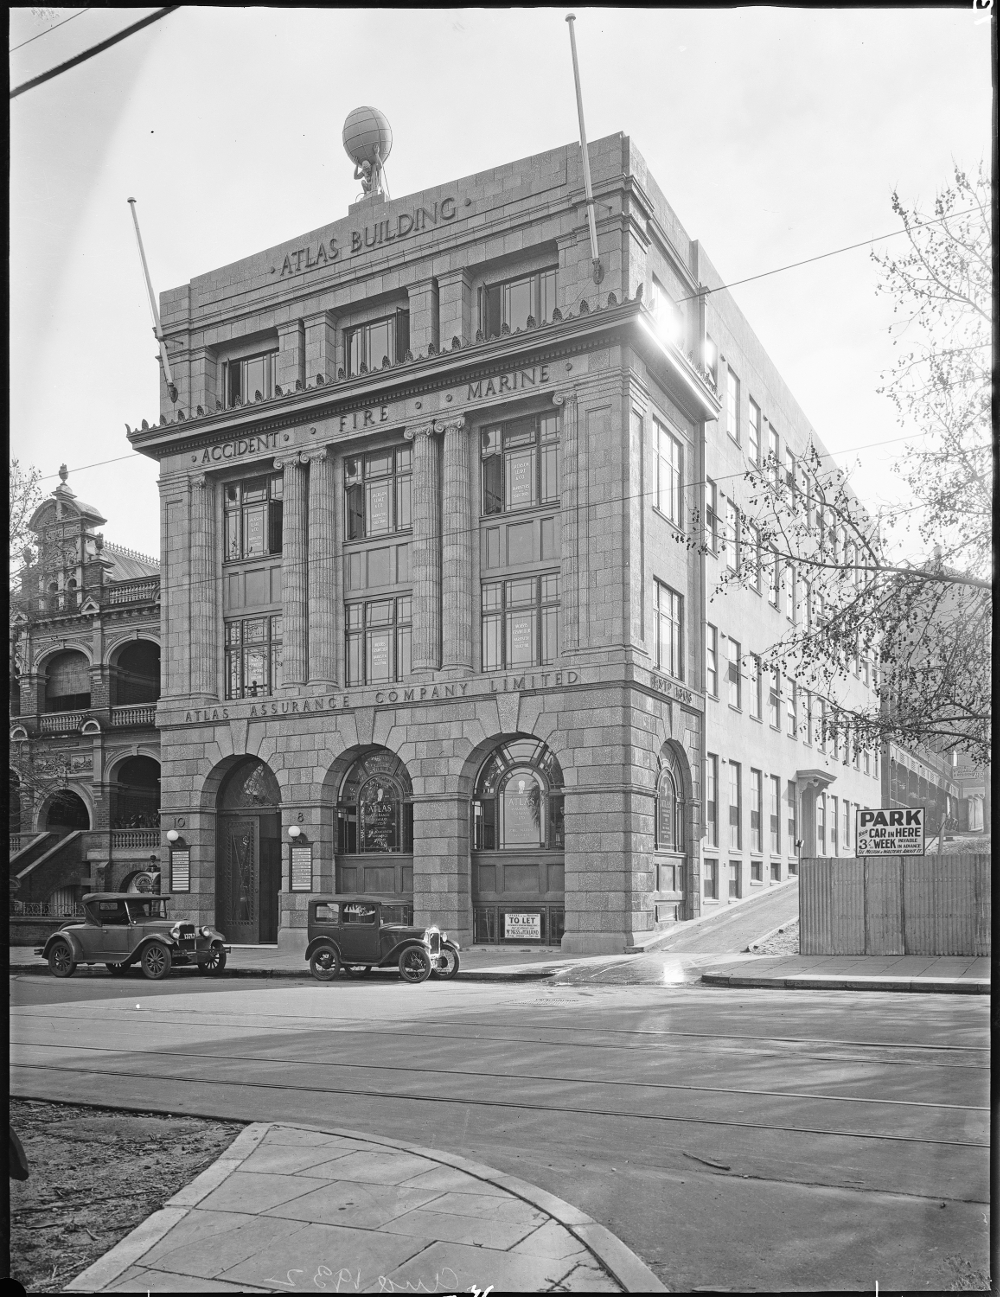 August 1932 Atlas Building State Library of Western Australia Image: SLWA 095428PD